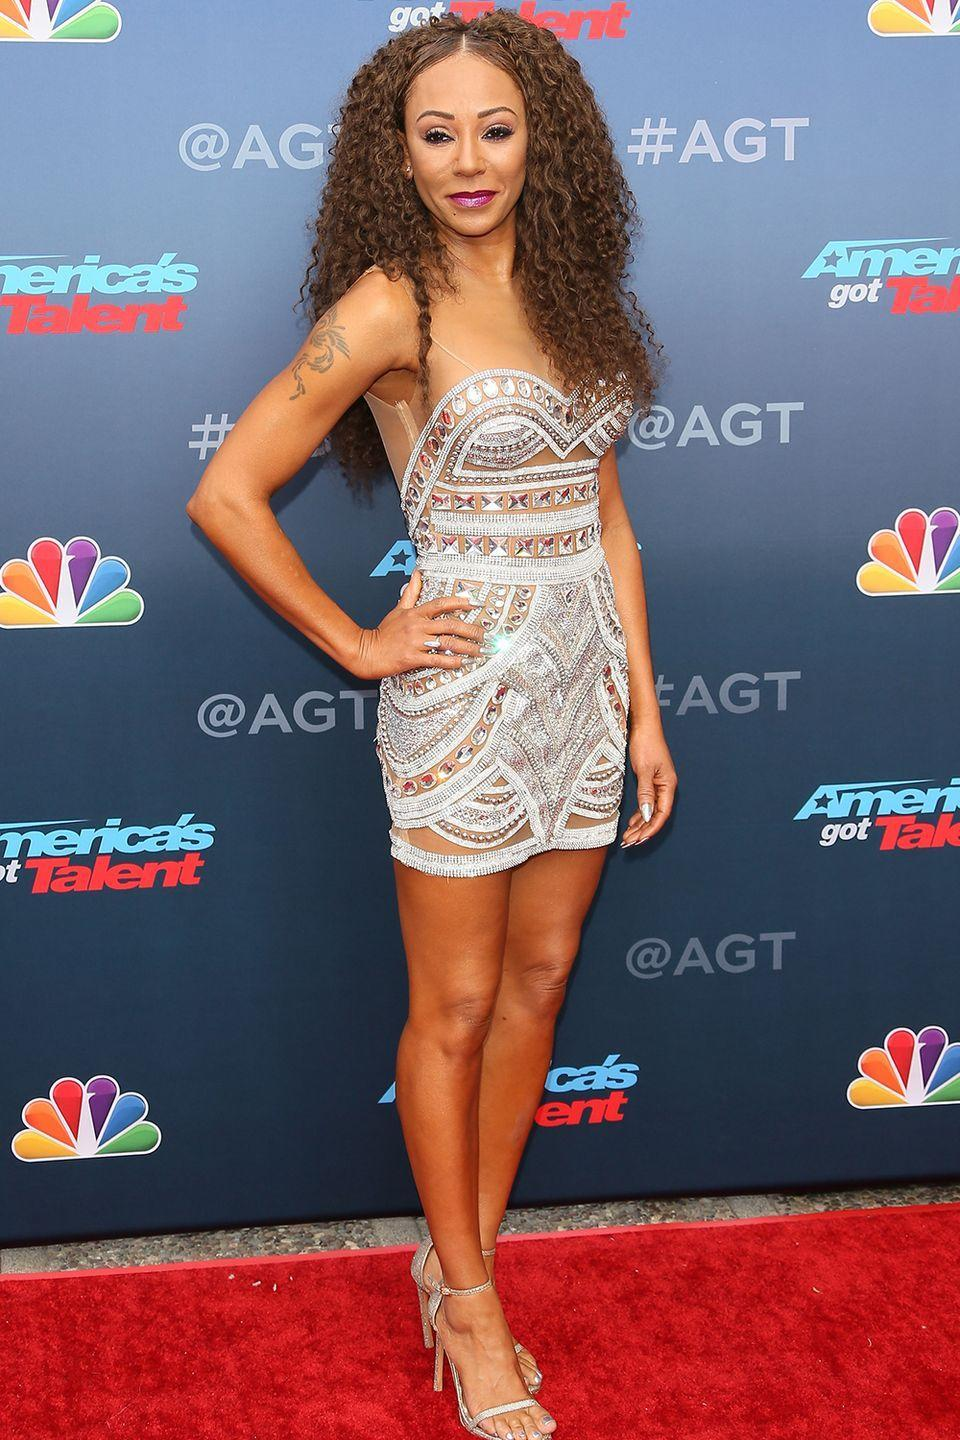 """<p>Mel B, a.k.a Scary Spice, and her then-boyfriend Eddie Murphy got <a href=""""https://www.huffingtonpost.com/2013/07/24/celebrities-remove-tattoo_n_3645934.html?slideshow=true#gallery/310078/9"""" rel=""""nofollow noopener"""" target=""""_blank"""" data-ylk=""""slk:matching hip tattoos"""" class=""""link rapid-noclick-resp"""">matching hip tattoos</a> in 2007. After ending their tumultuous relationship, Mel had her """"Eddie"""" tattoo removed.</p>"""